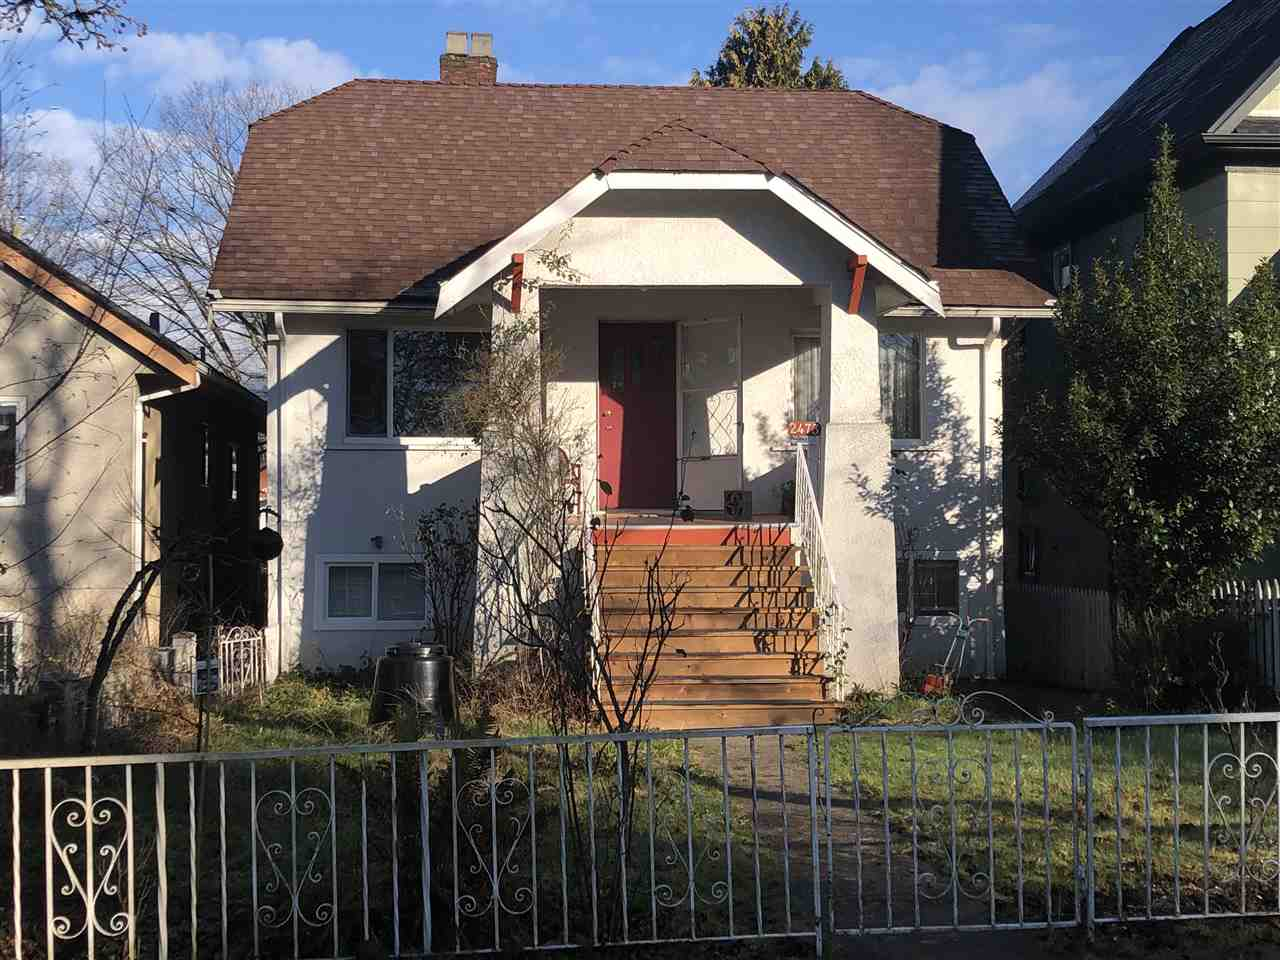 2473 CAMBRIDGE STREET - Collingwood VE House/Single Family for sale, 6 Bedrooms (R2536276) - #1